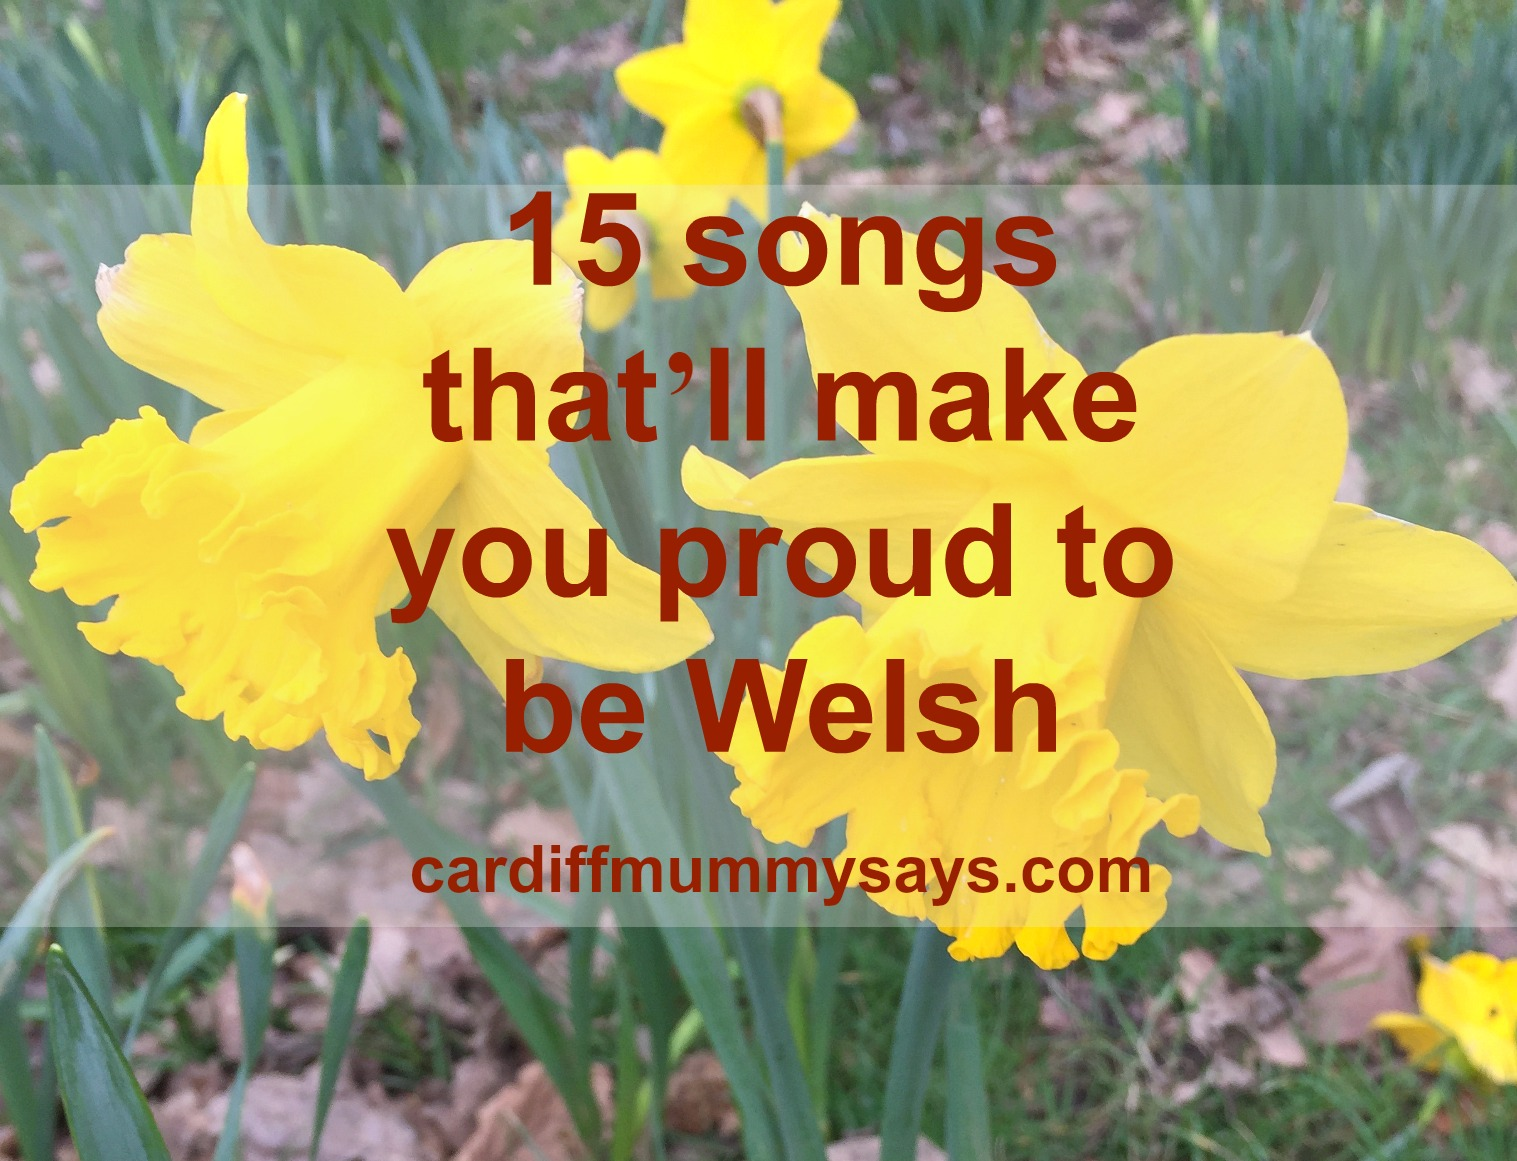 15 songs that'll make you proud to be Welsh image plus text